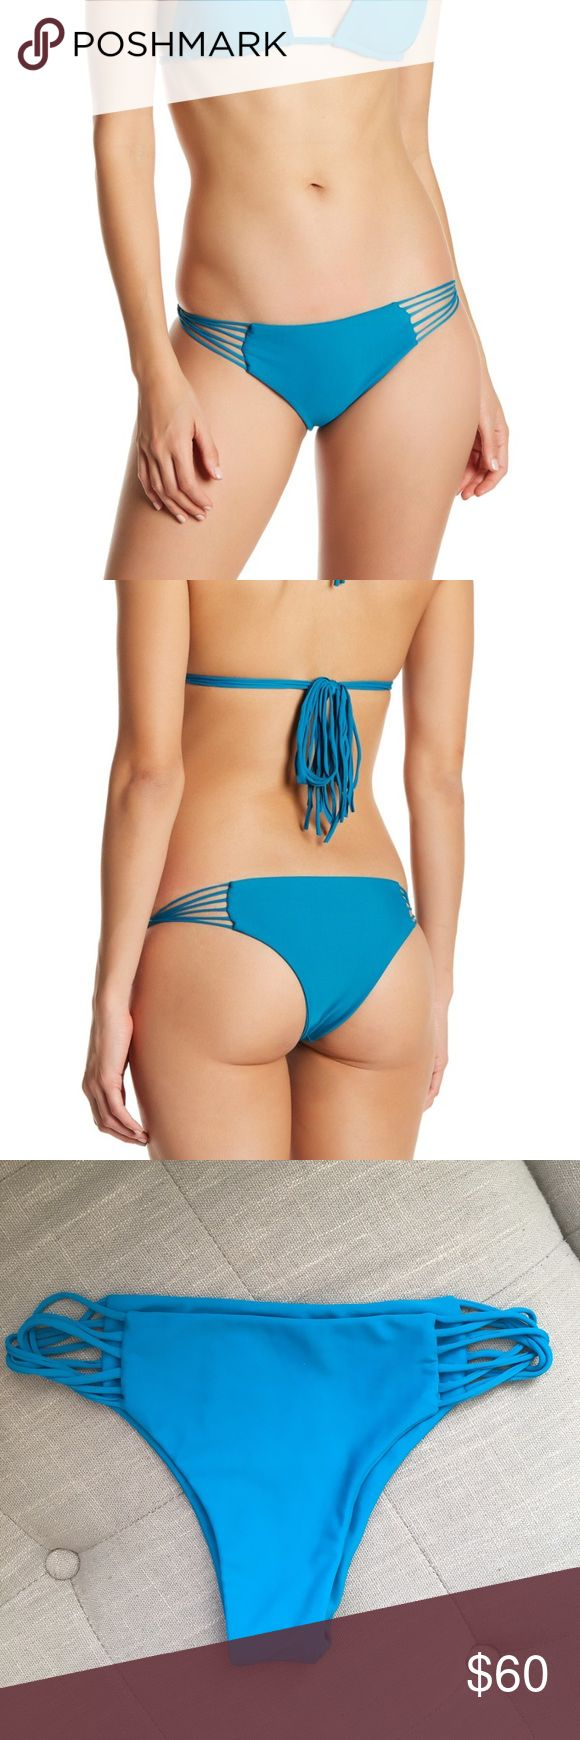 MIKOH Swimwear Lanai bottom in Marina BRAND NEW MIKOH Swimwear Lanai bottom, marina solmar color. BRAND NEW without tags, liner still on, never worn! Fully seamless, skimpy coverage. Mikoh Swim Bikinis